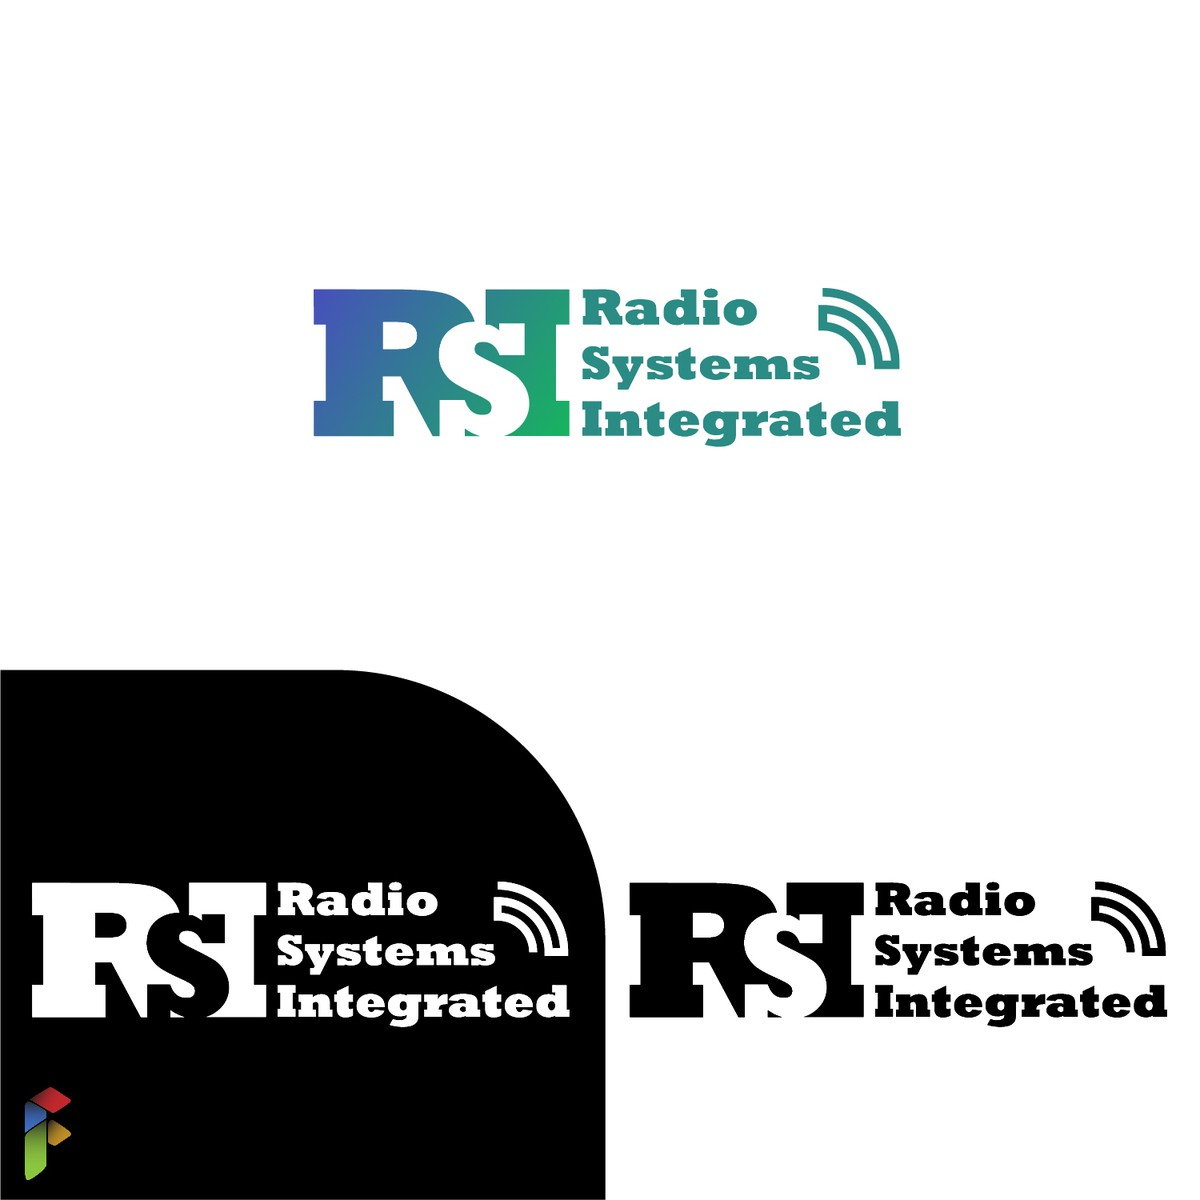 radio_systems_Logo_01_1-100